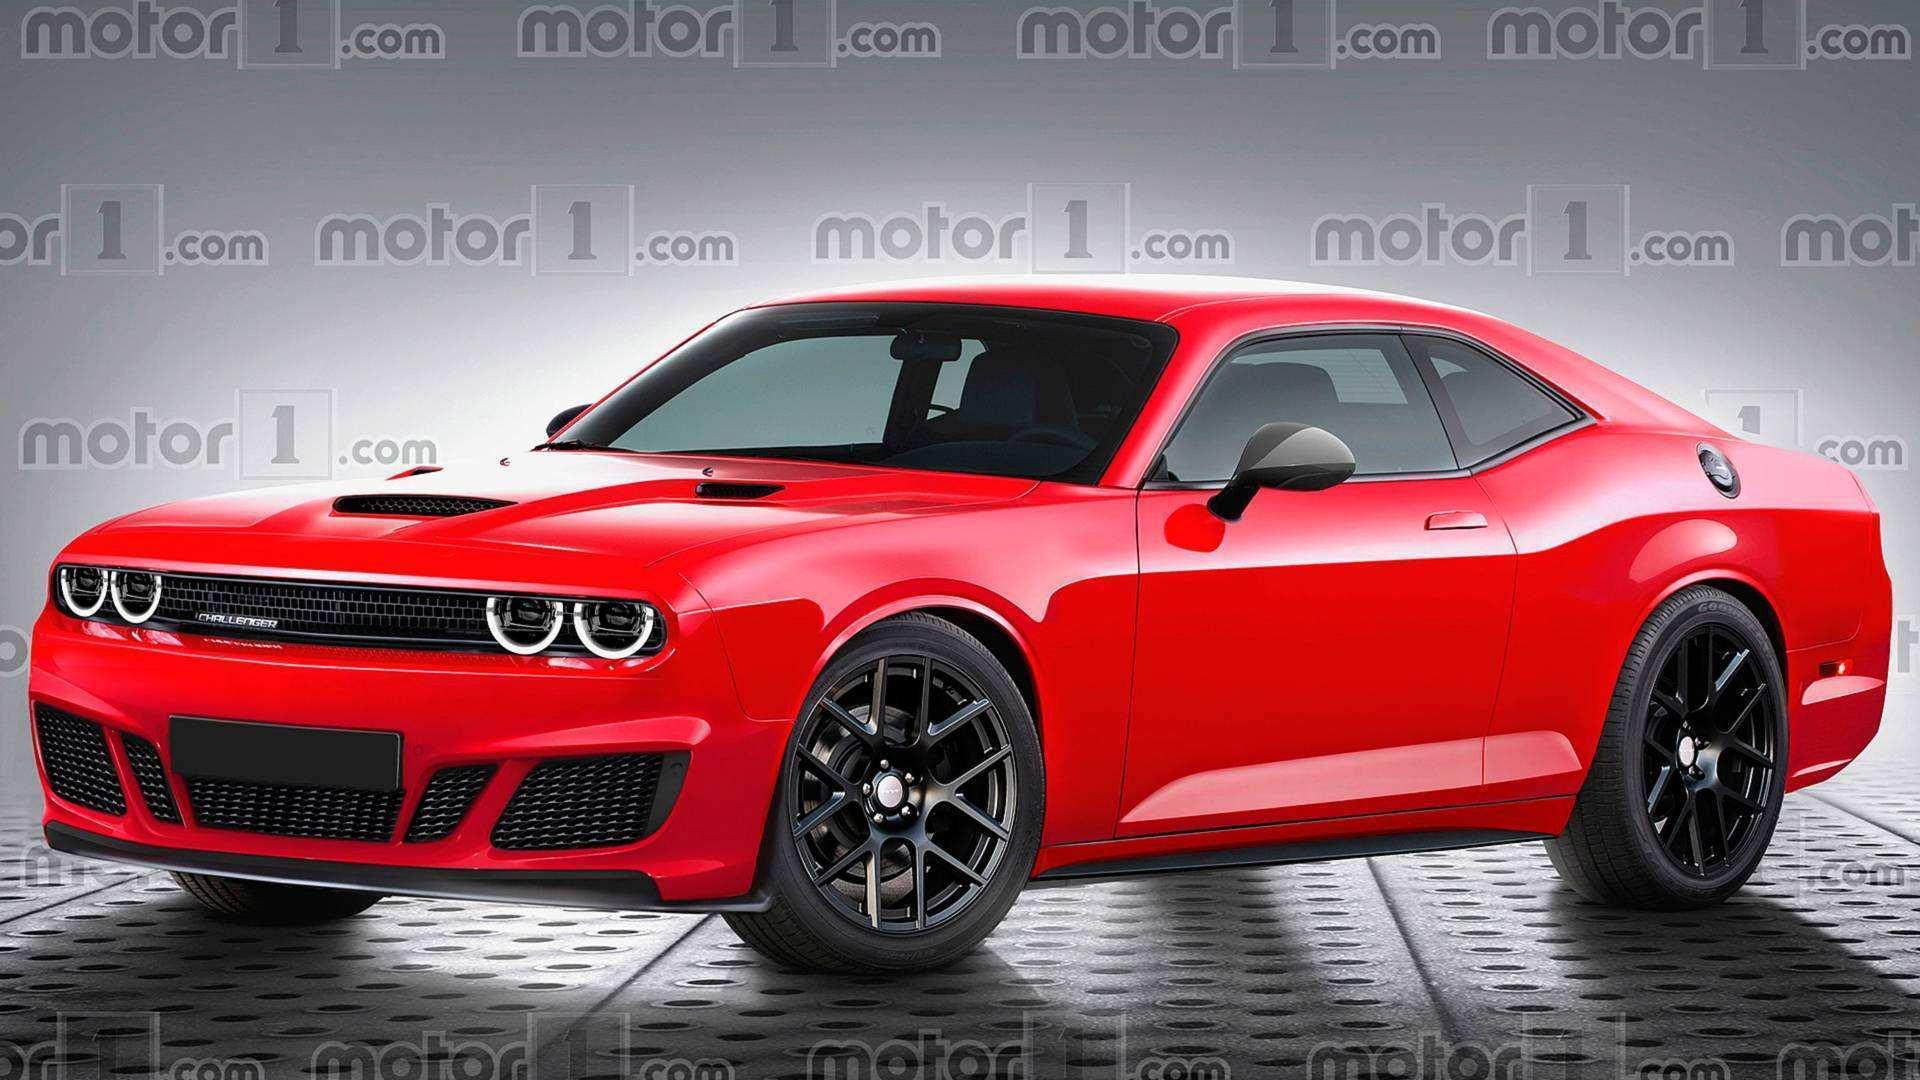 86 Best Review 2020 Dodge Demon First Drive for 2020 Dodge Demon